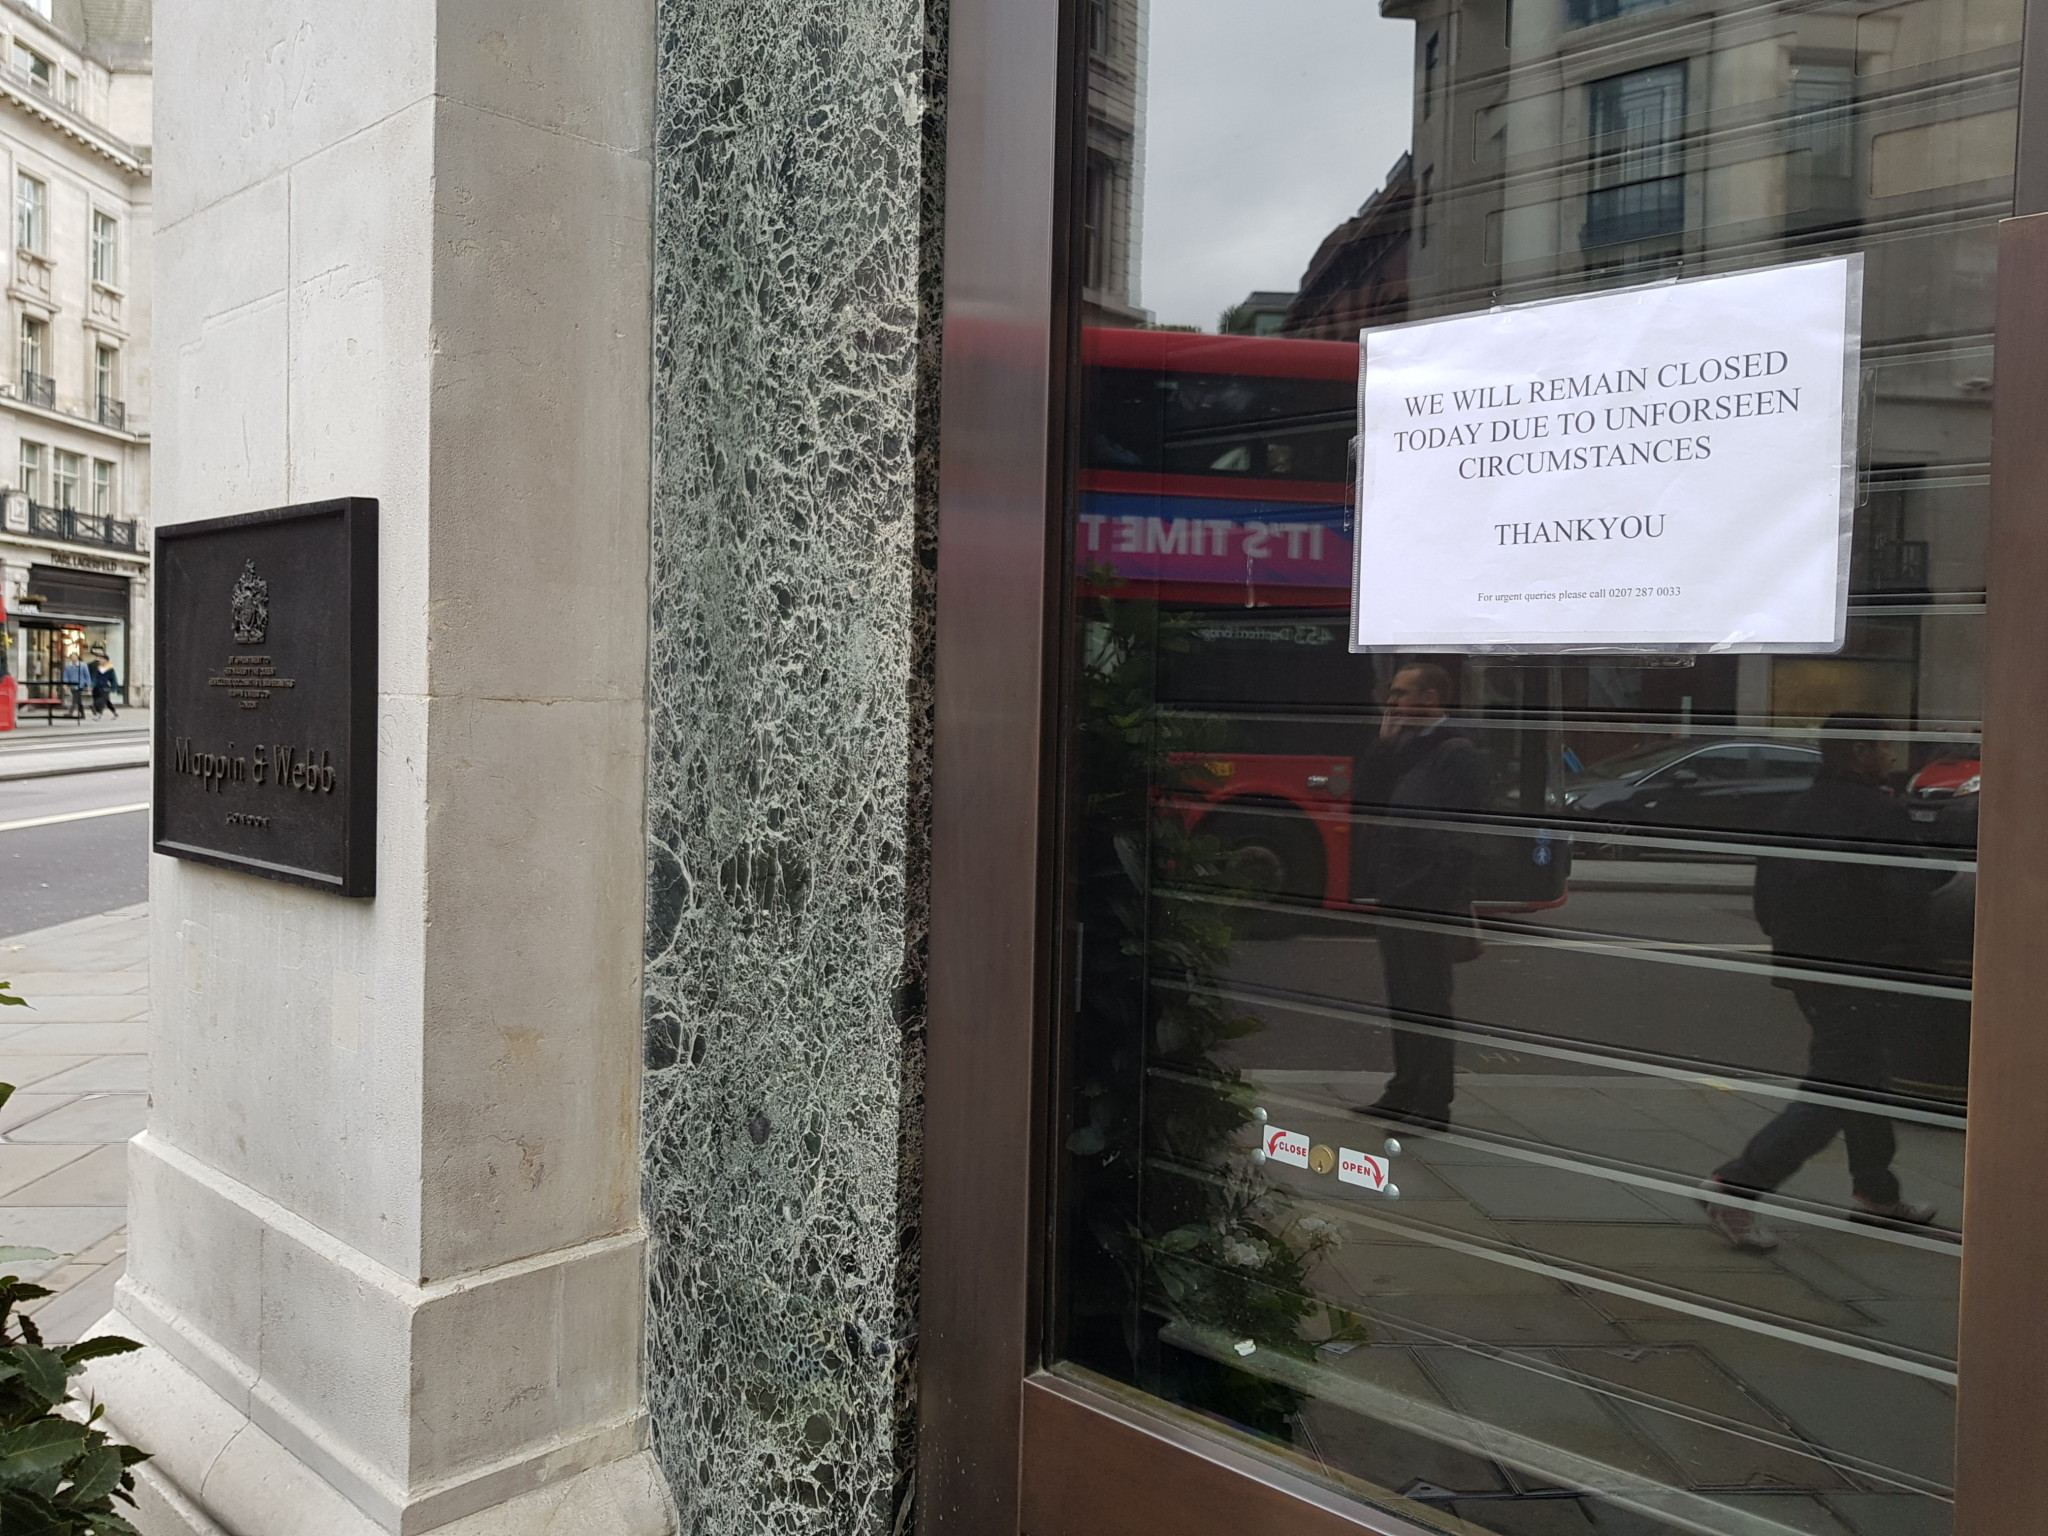 Mappin & Webb remained closed the morning after the raid.